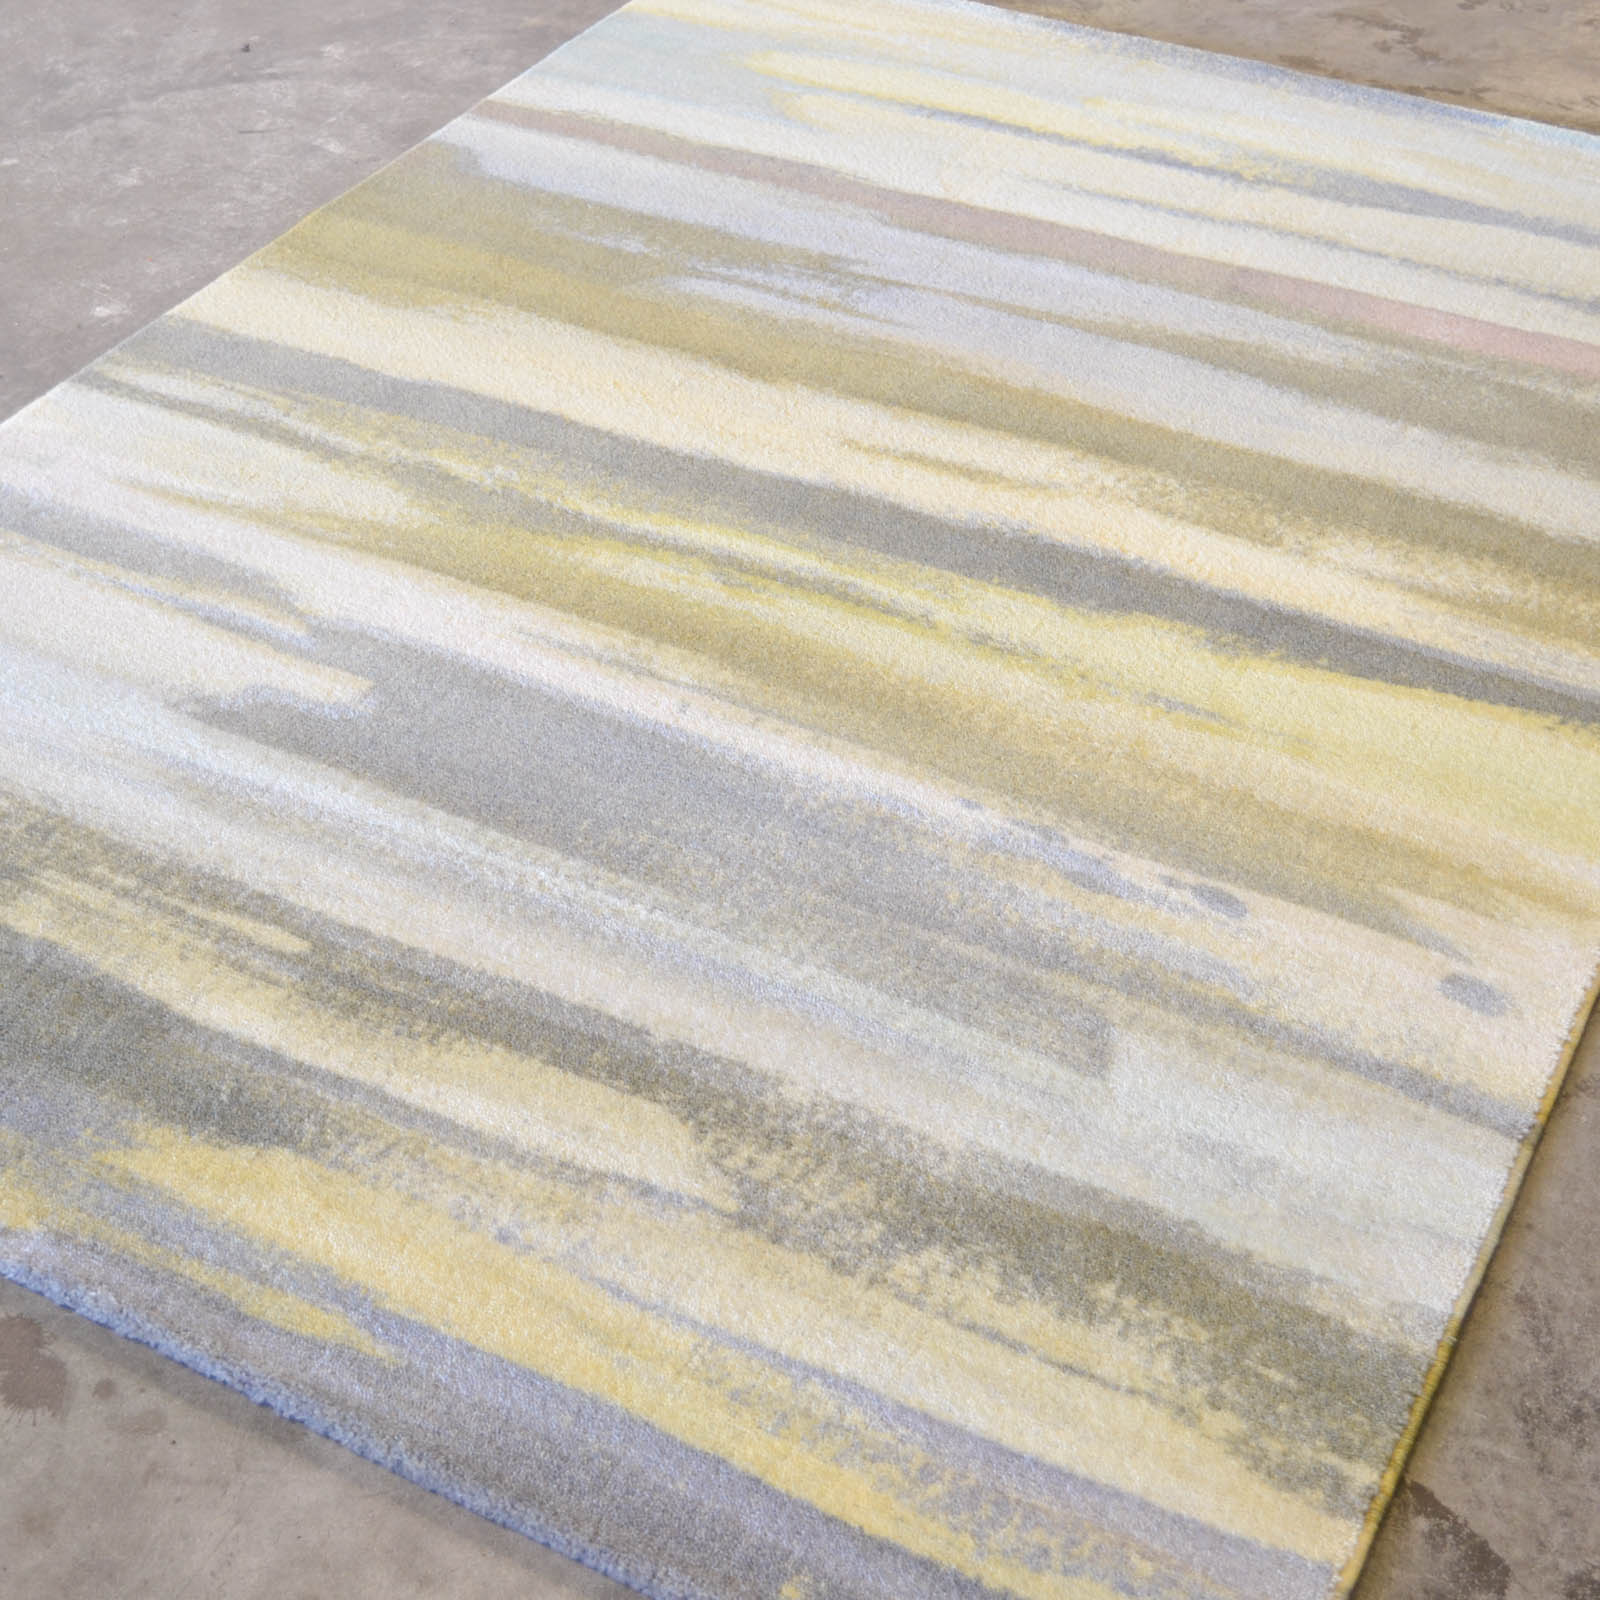 Holograph Jazz Rugs 16601 by Brink and Campman